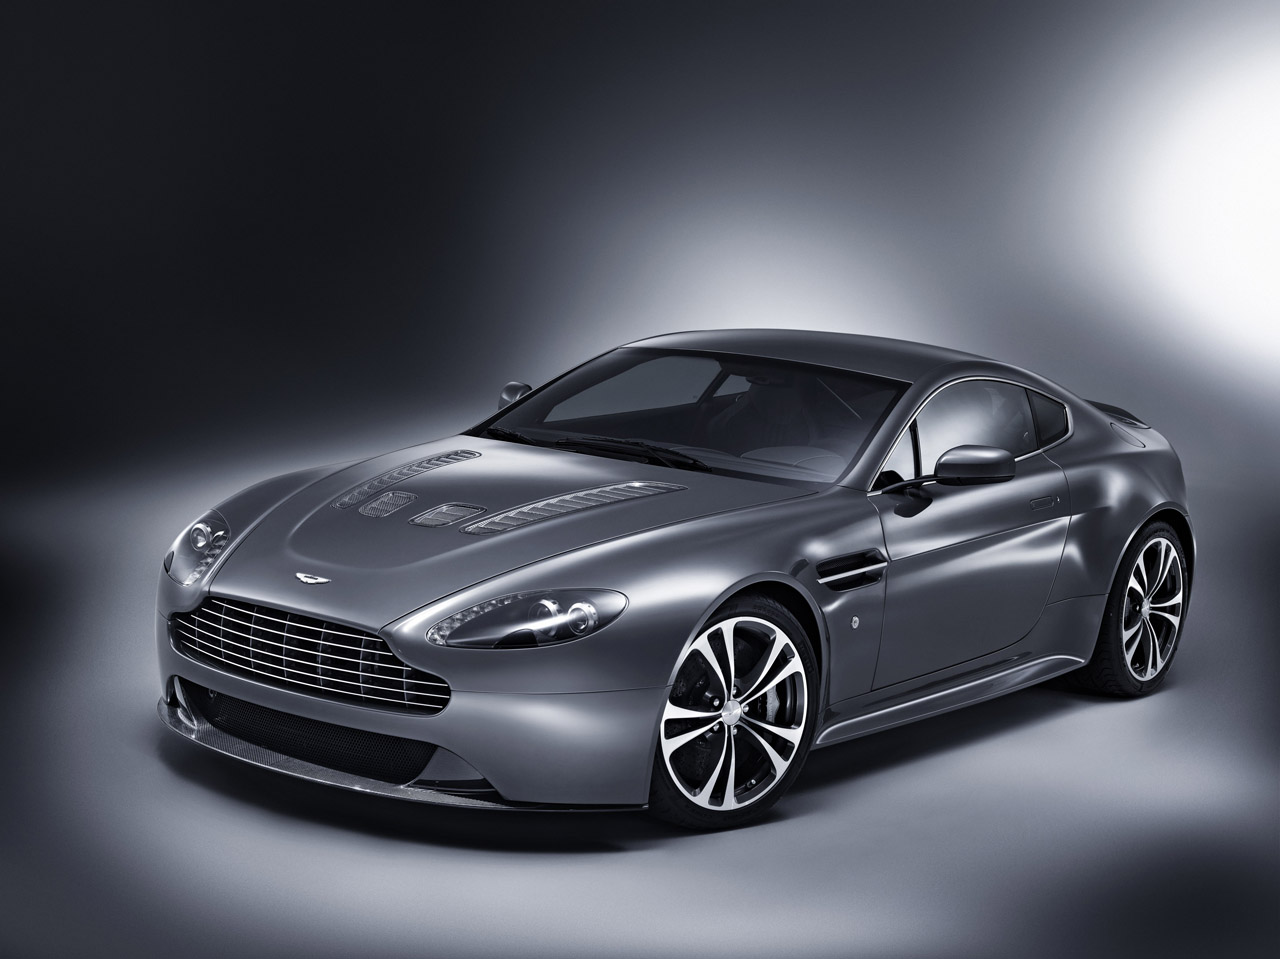 Aston Martin v8 Vantage Price in India Aston Martin v8 Vantage s